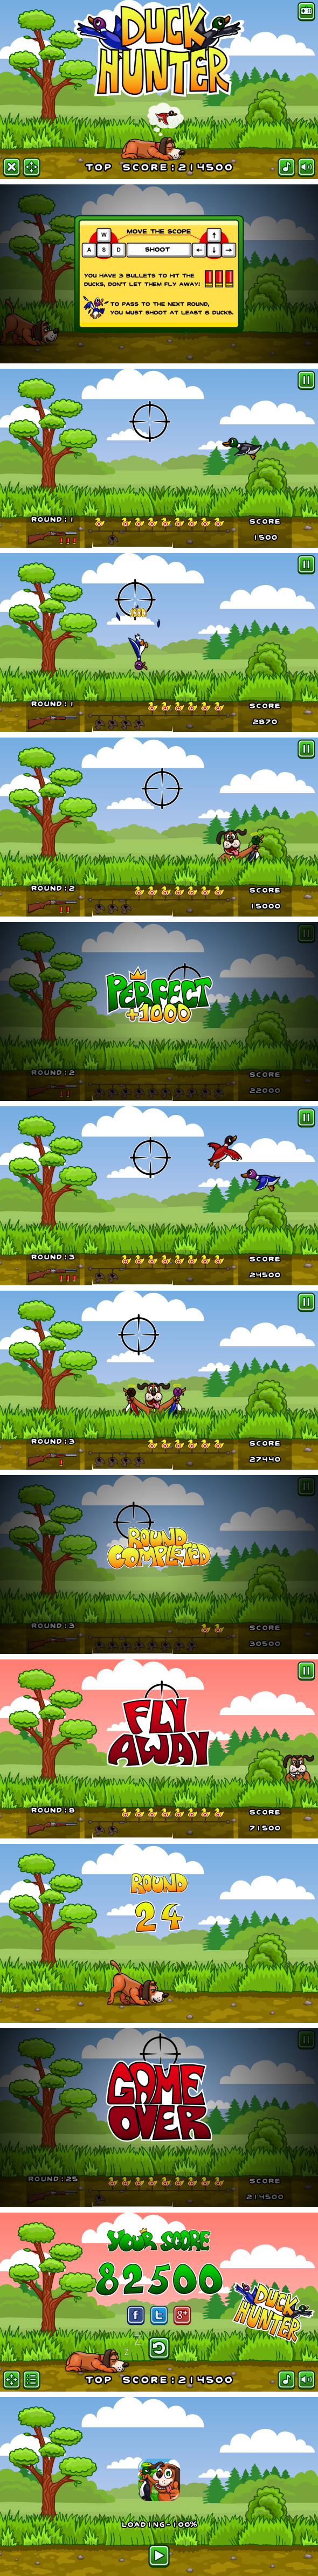 Duck Hunter - HTML5 Game + Mobile Version! (Construct 3 | Construct 2 | Capx) - 3